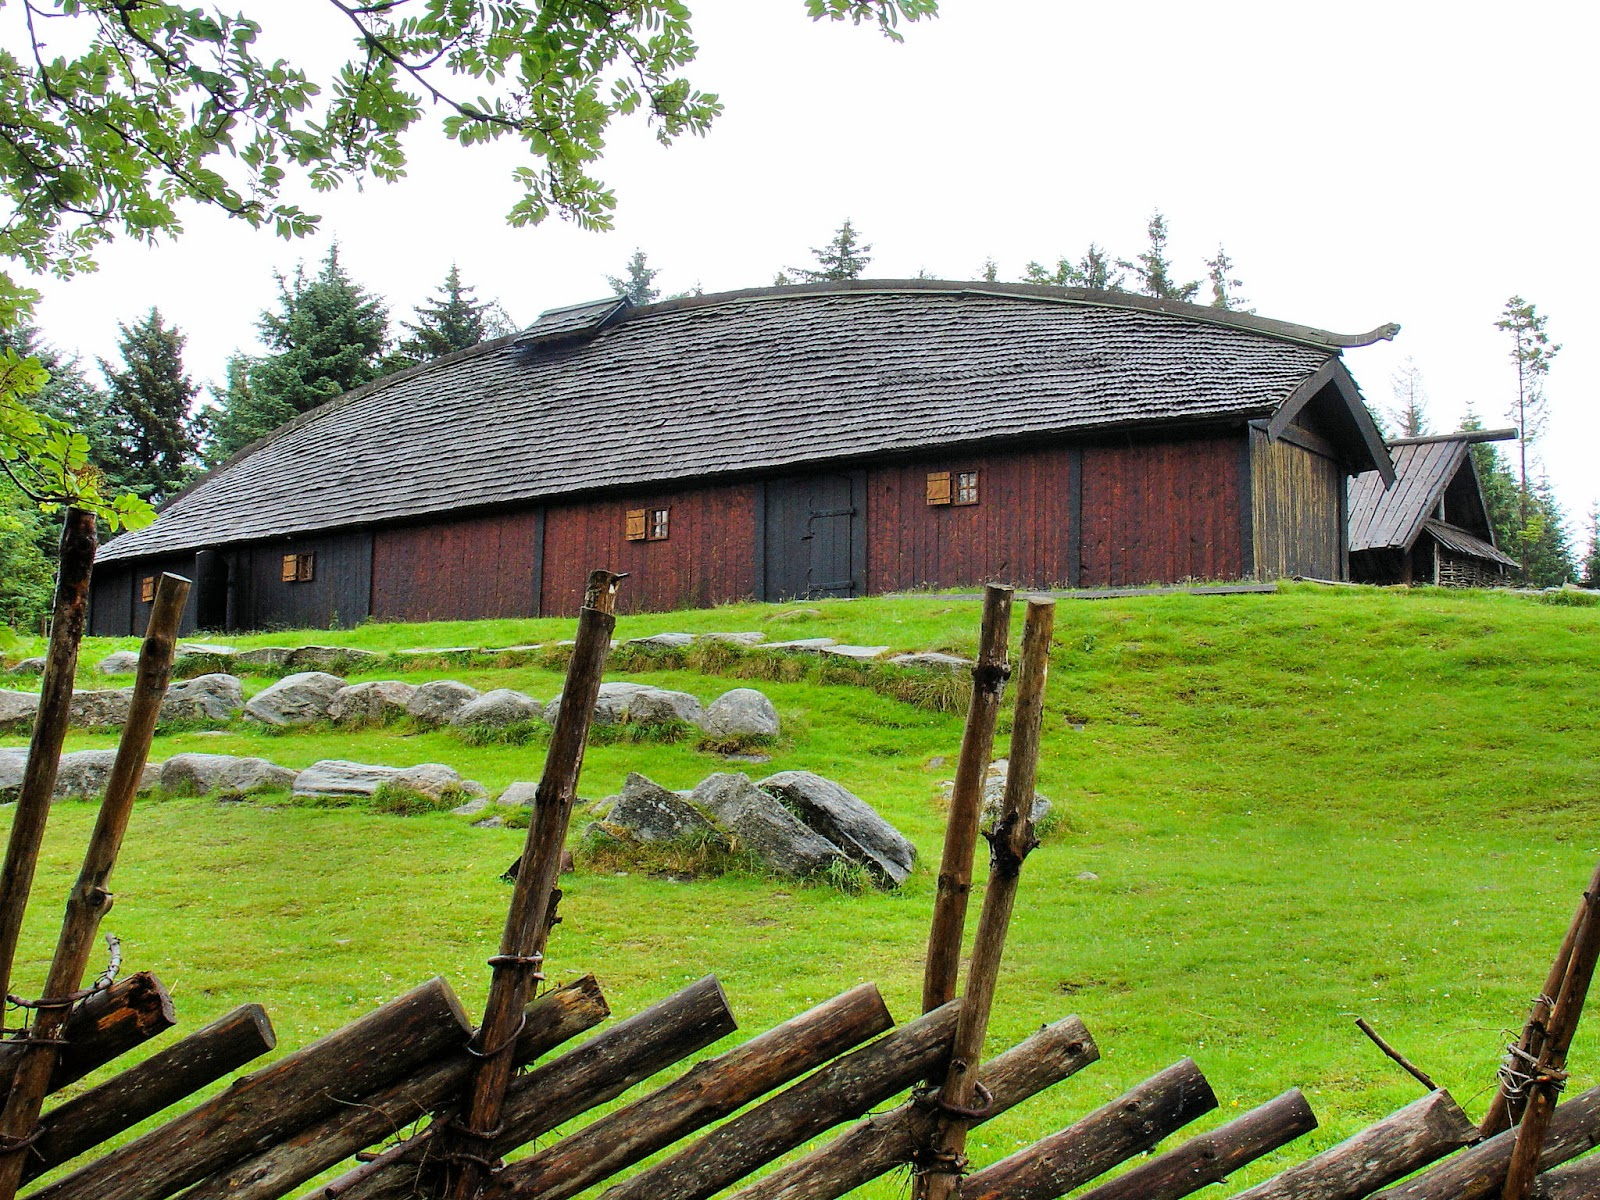 We explored this replica of an ancient Viking settlement at the Norwegian History Center in Avaldsnes, near Haugesund.